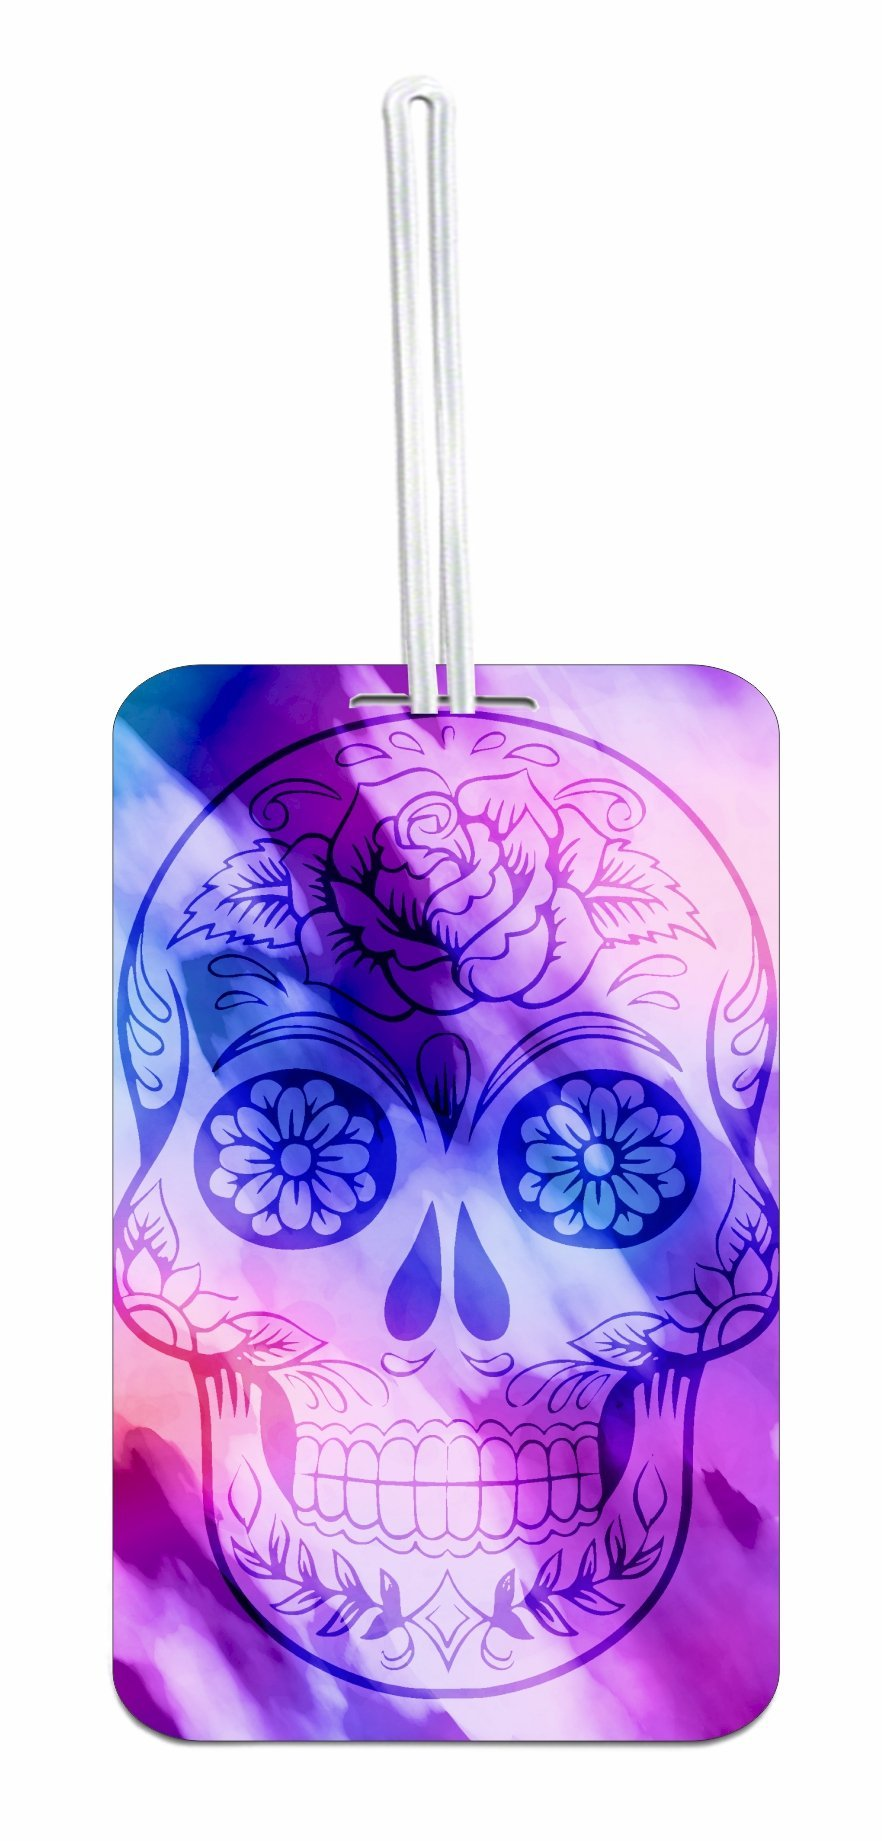 Watercolor Sugar Skull Design School Bag/Backpack ID Tag with Custom Reverse - Customize Yours Now